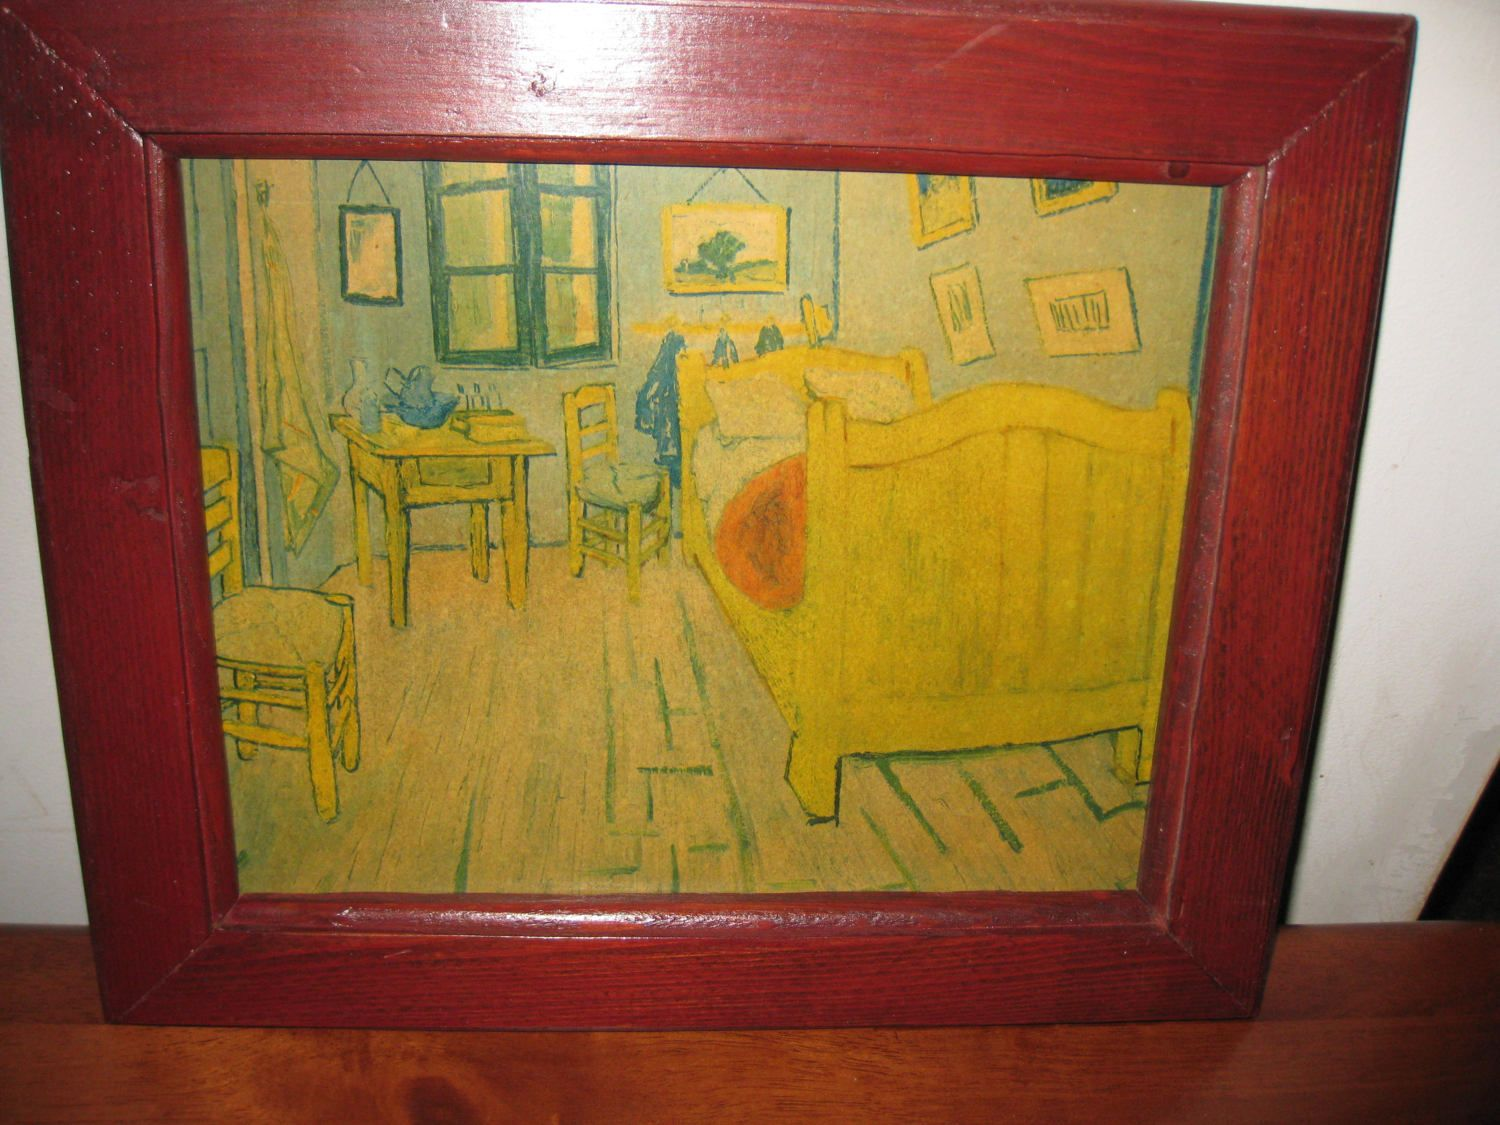 VINTAGE DRAWING Or Print On Masonite Board Bedroom Scene With Bed ...